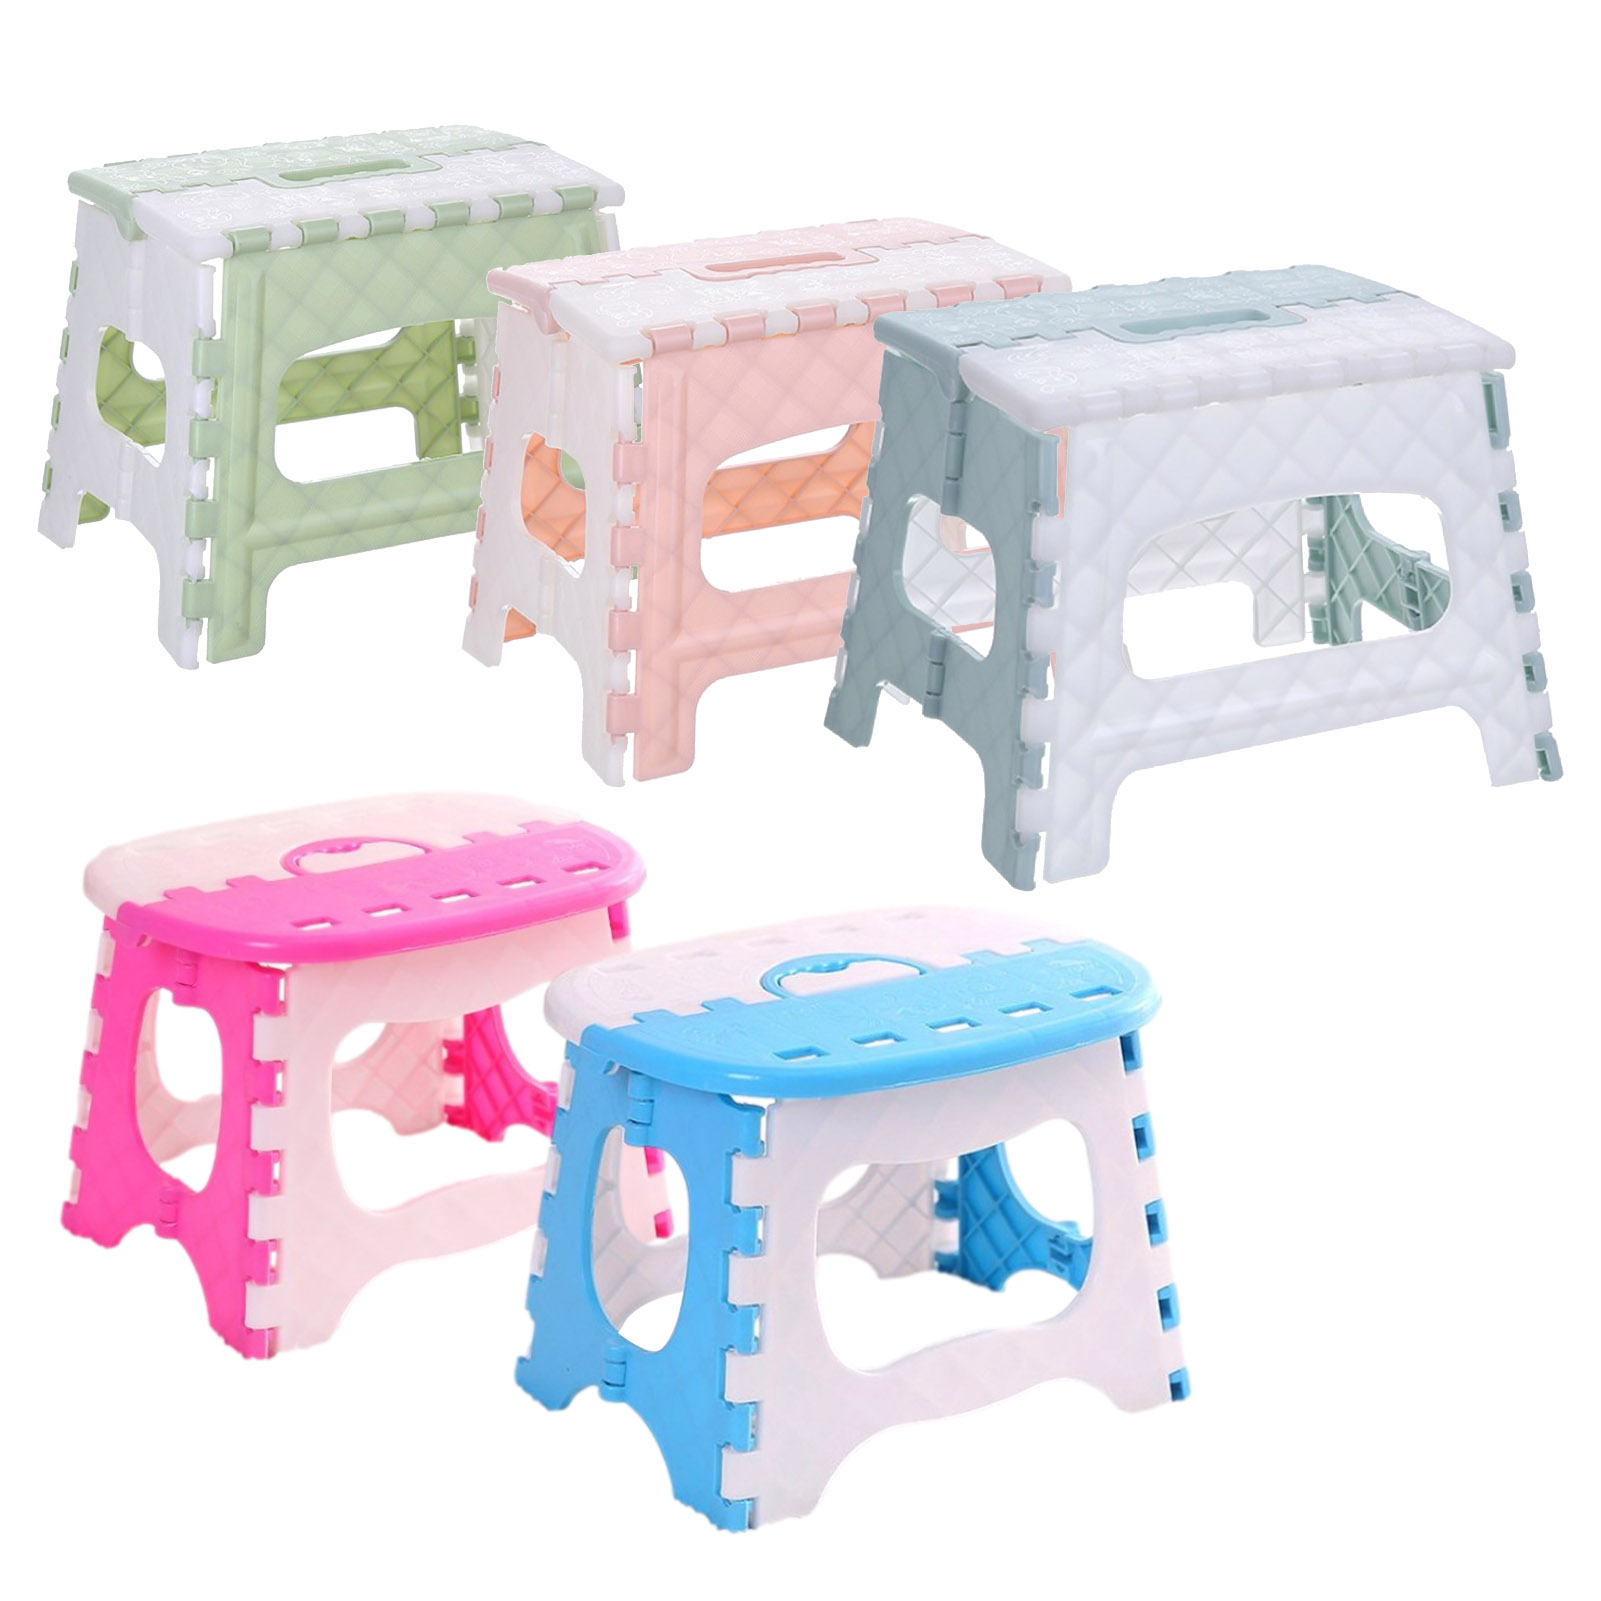 Folding Stools Multi-functional Portable PP Chairs Durable Foldable Space Saving Light Weight for Kids Adults 5 Colors